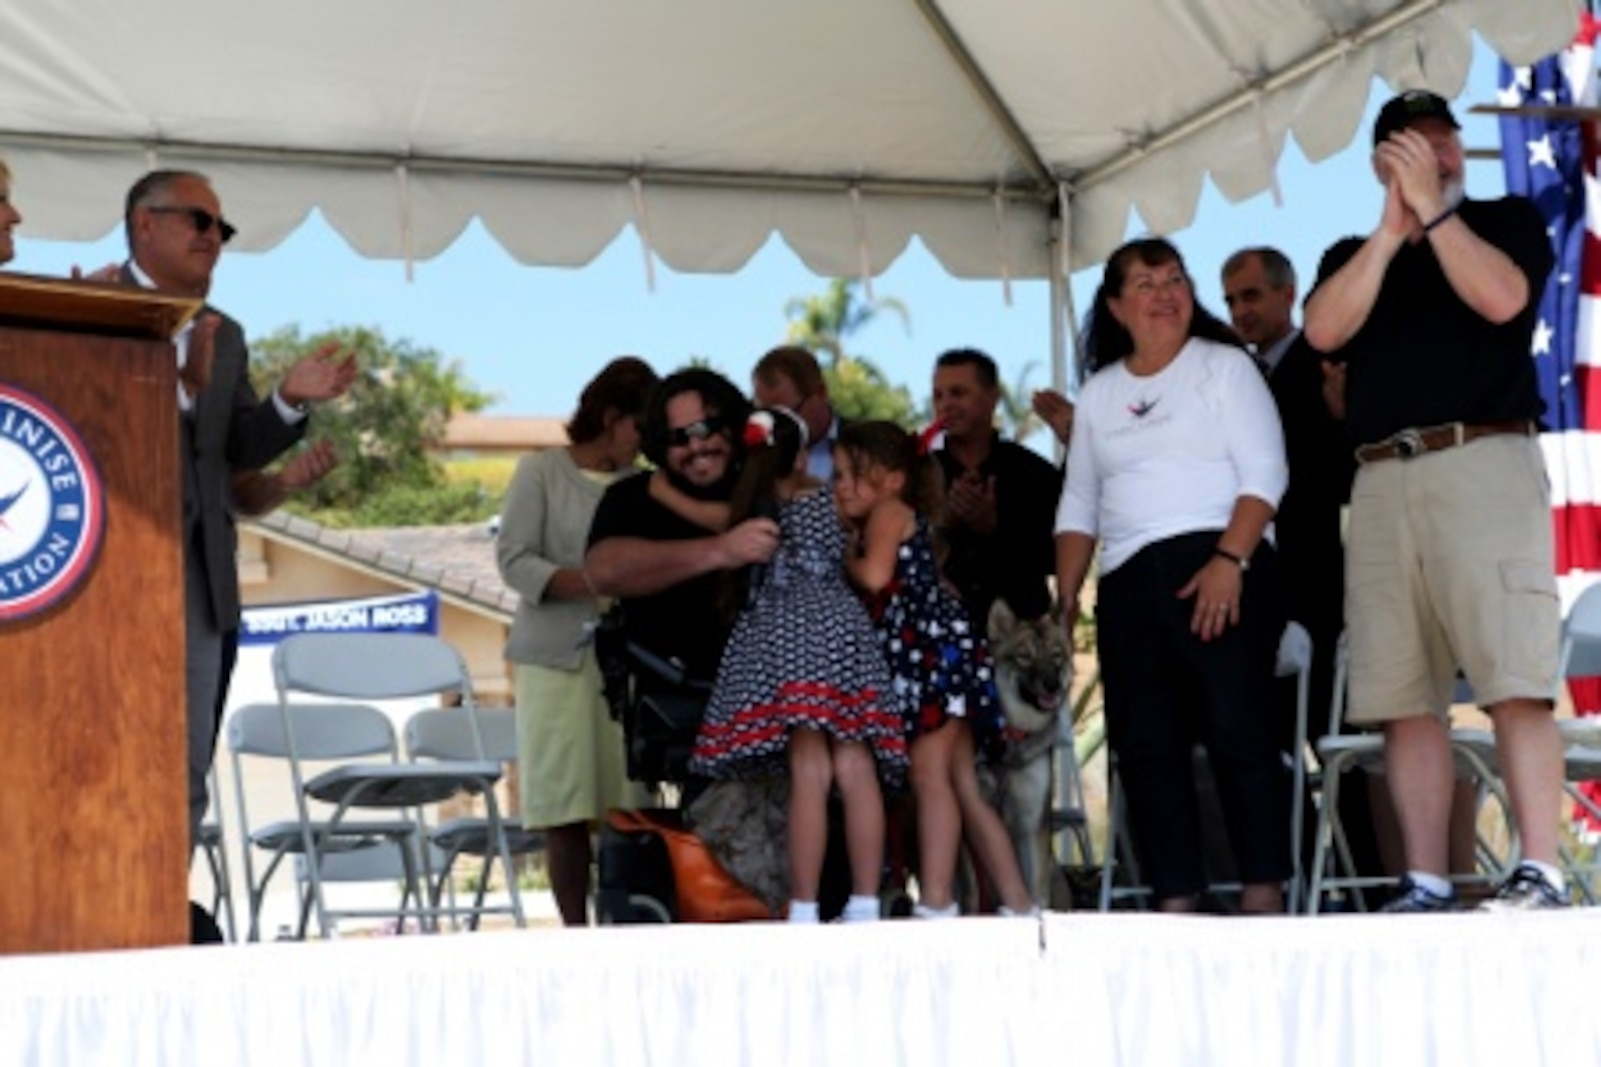 Retired Staff Sgt. Jason Ross hugs his two daughters, Jackie and Stacie, during a ceremony where a new home was presented to him and his family by The Gary Sinise Foundation and their Restoring Independence Supporting Empowerment program dedicated to helping wounded veterans. Ross was injured by an improvised explosive device in Afghanistan in 2011 while serving as an explosive ordnance disposal technician and lost both of his legs as a result. The new home has smart technology that will significantly reduce the difficulty of everyday tasks for Ross and allow him and his family to live more comfortably.